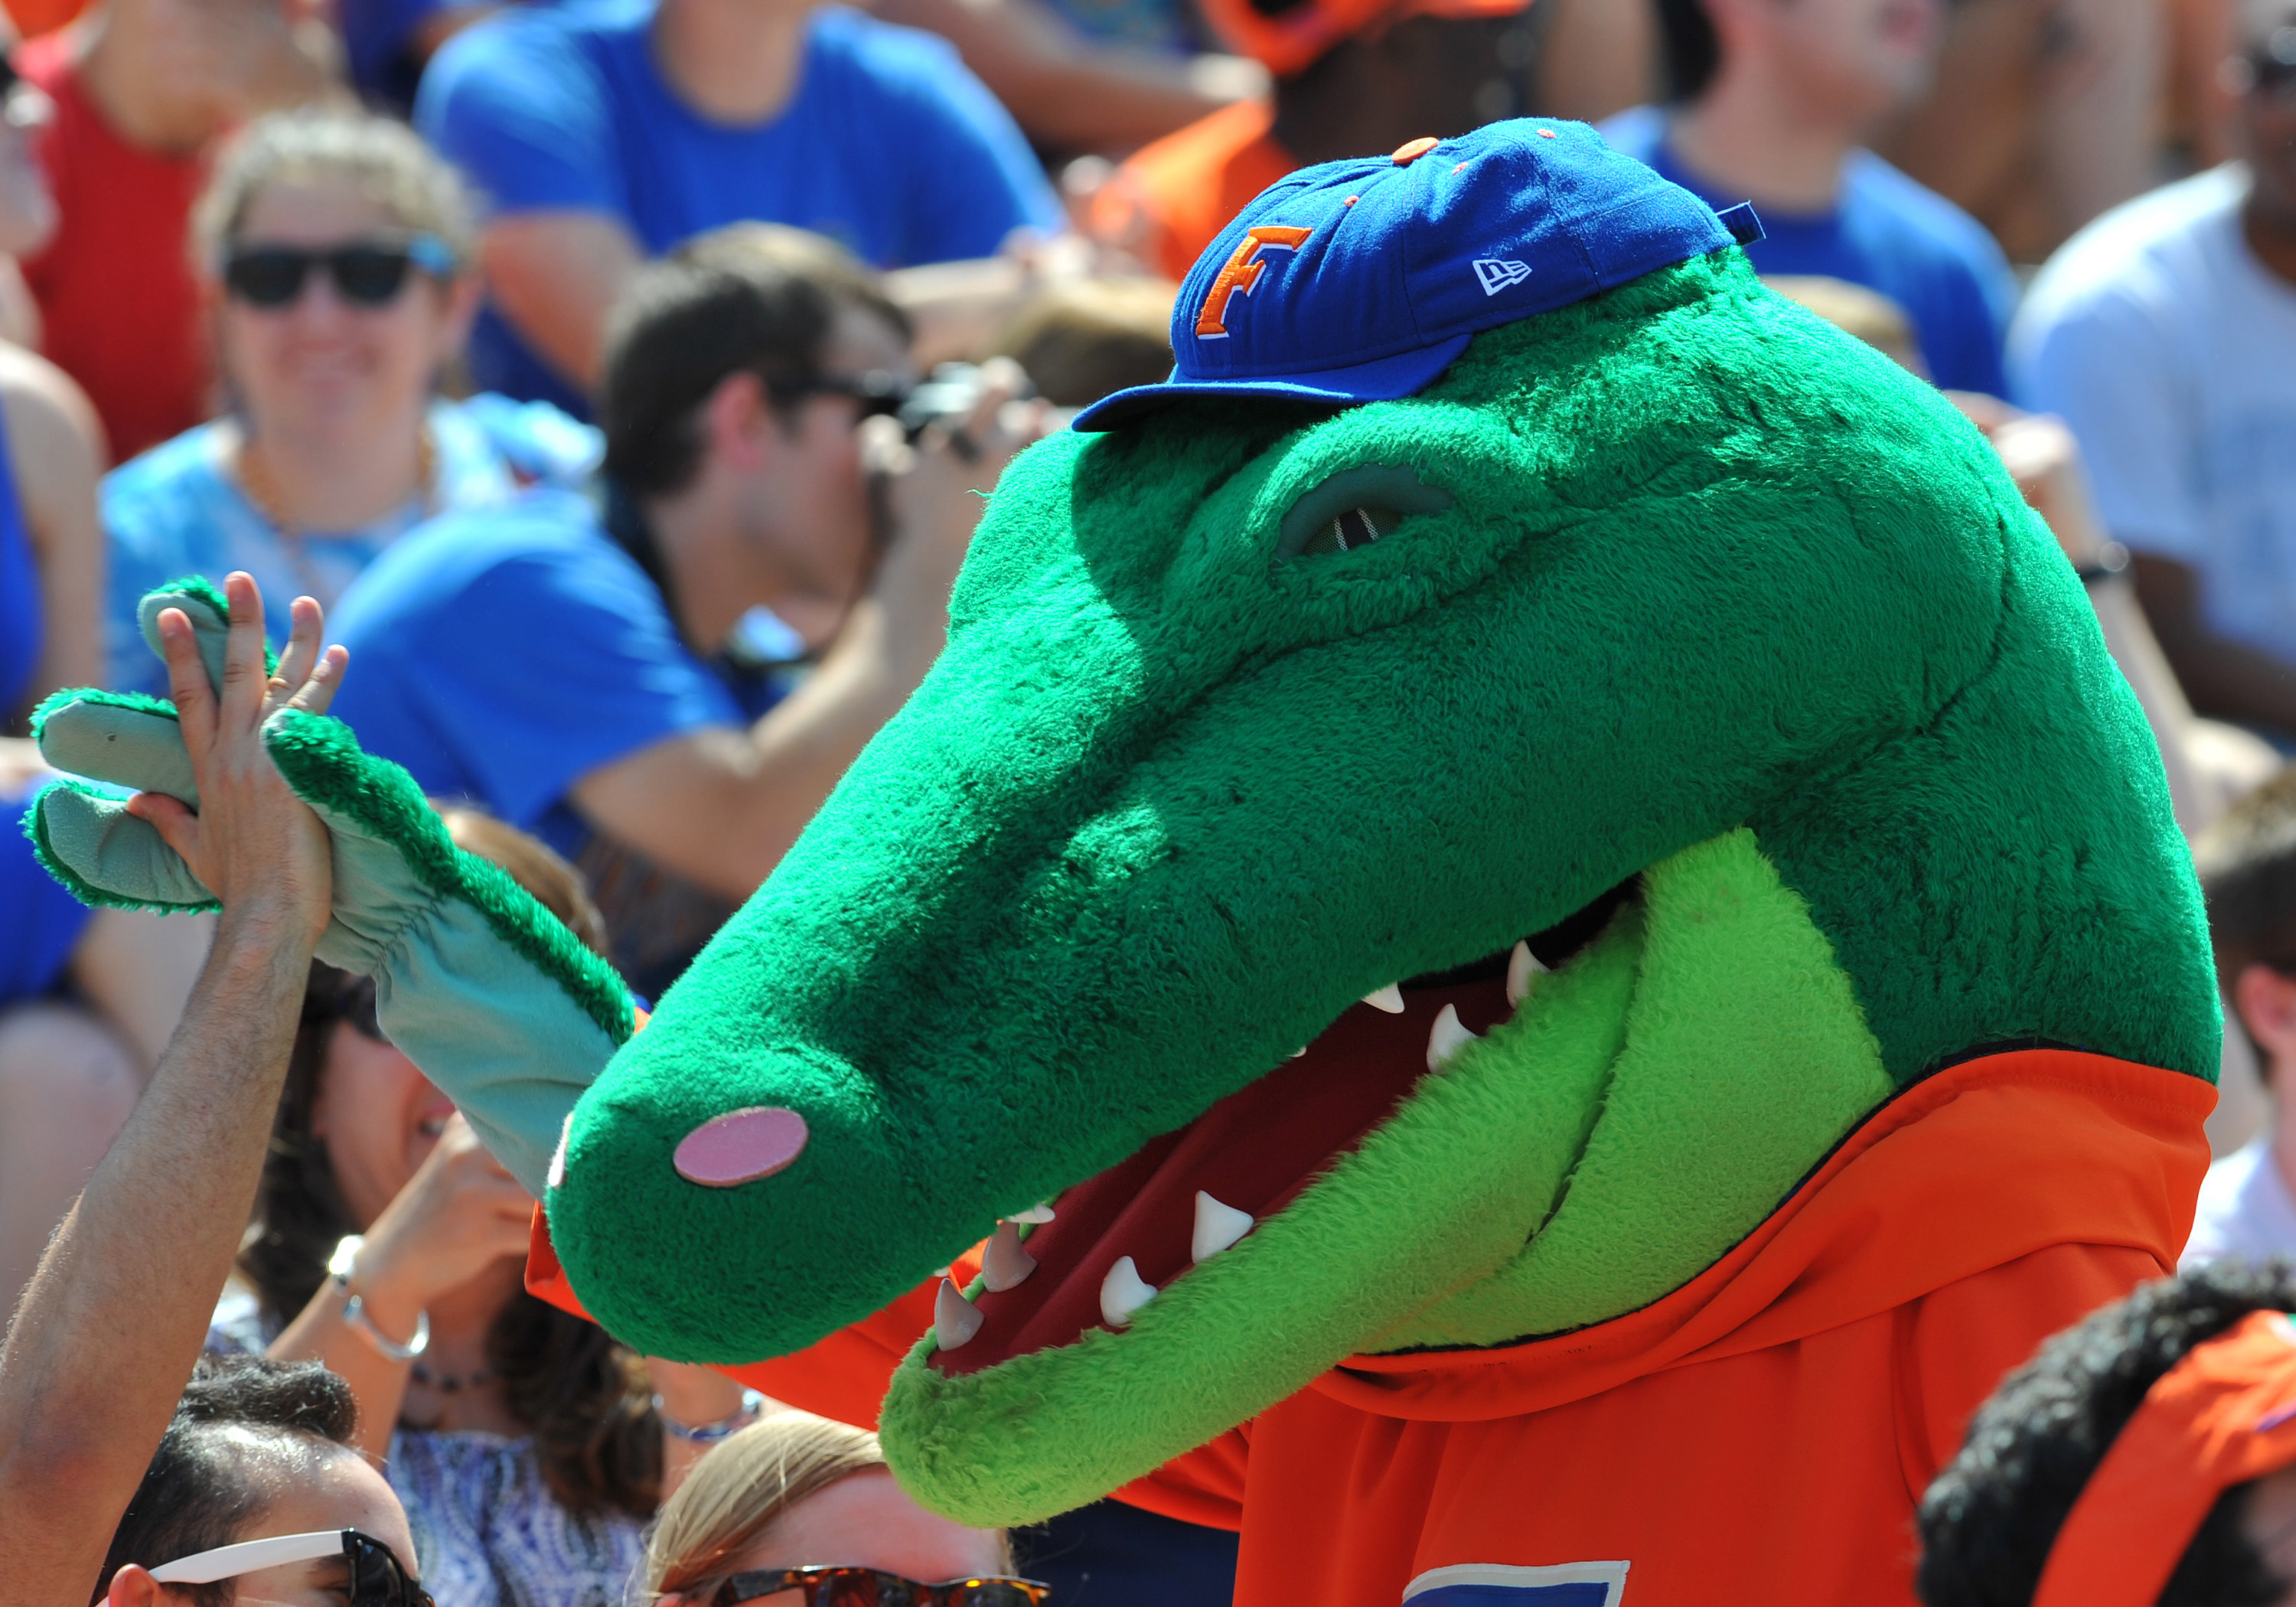 GAINESVILLE, FL - APRIL 9: The Florida Gators mascot celebrates with fans during the Orange and Blue spring football game April 9, 2011 at Ben Hill Griffin Stadium in Gainesville, Florida.  (Photo by Al Messerschmidt/Getty Images)